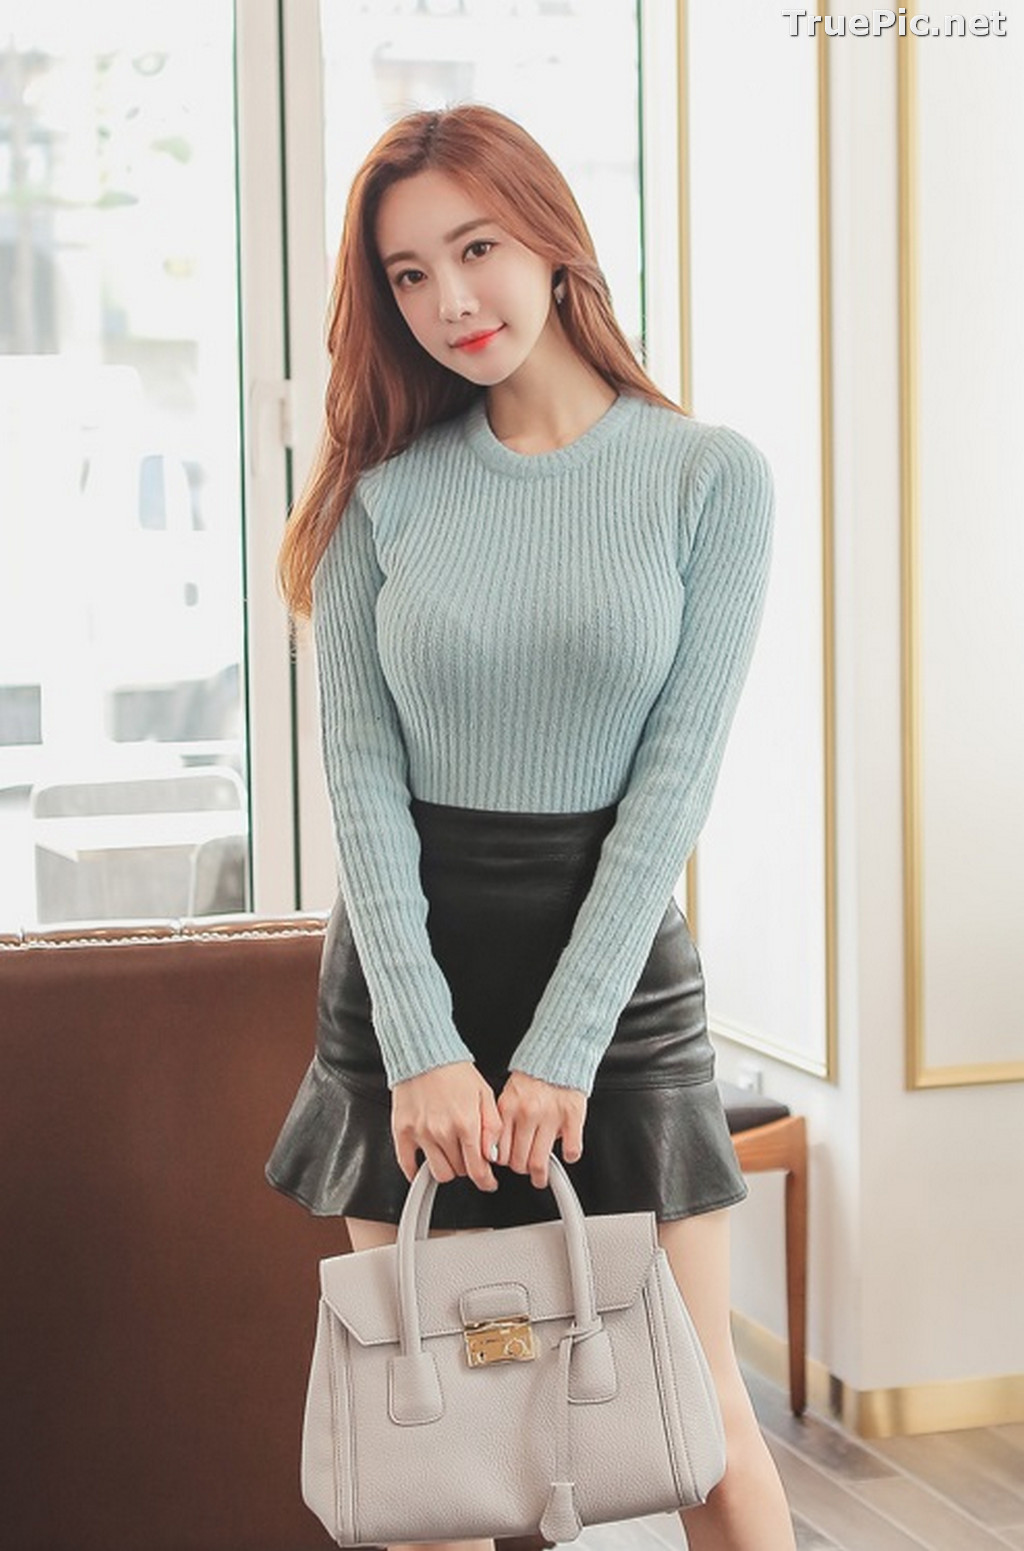 Image Korean Fashion Model – Hyemi – Office Dress Collection #3 - TruePic.net - Picture-2